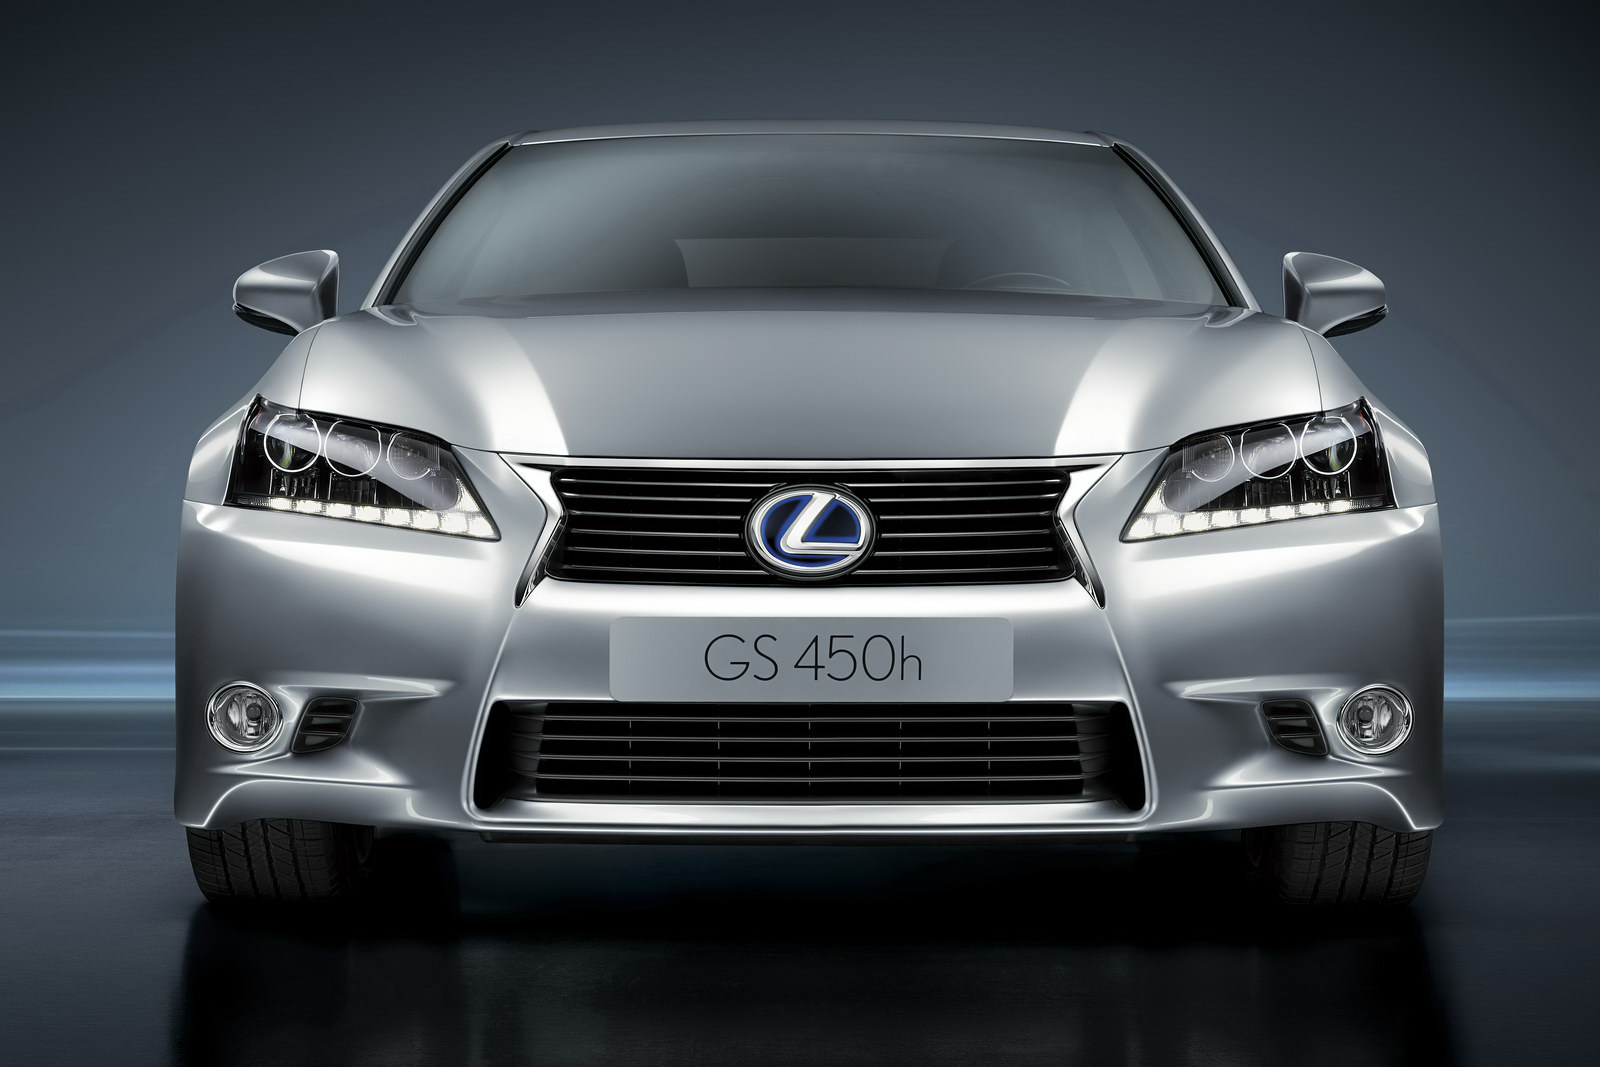 2013 lexus gs 450h information and photos zombiedrive. Black Bedroom Furniture Sets. Home Design Ideas